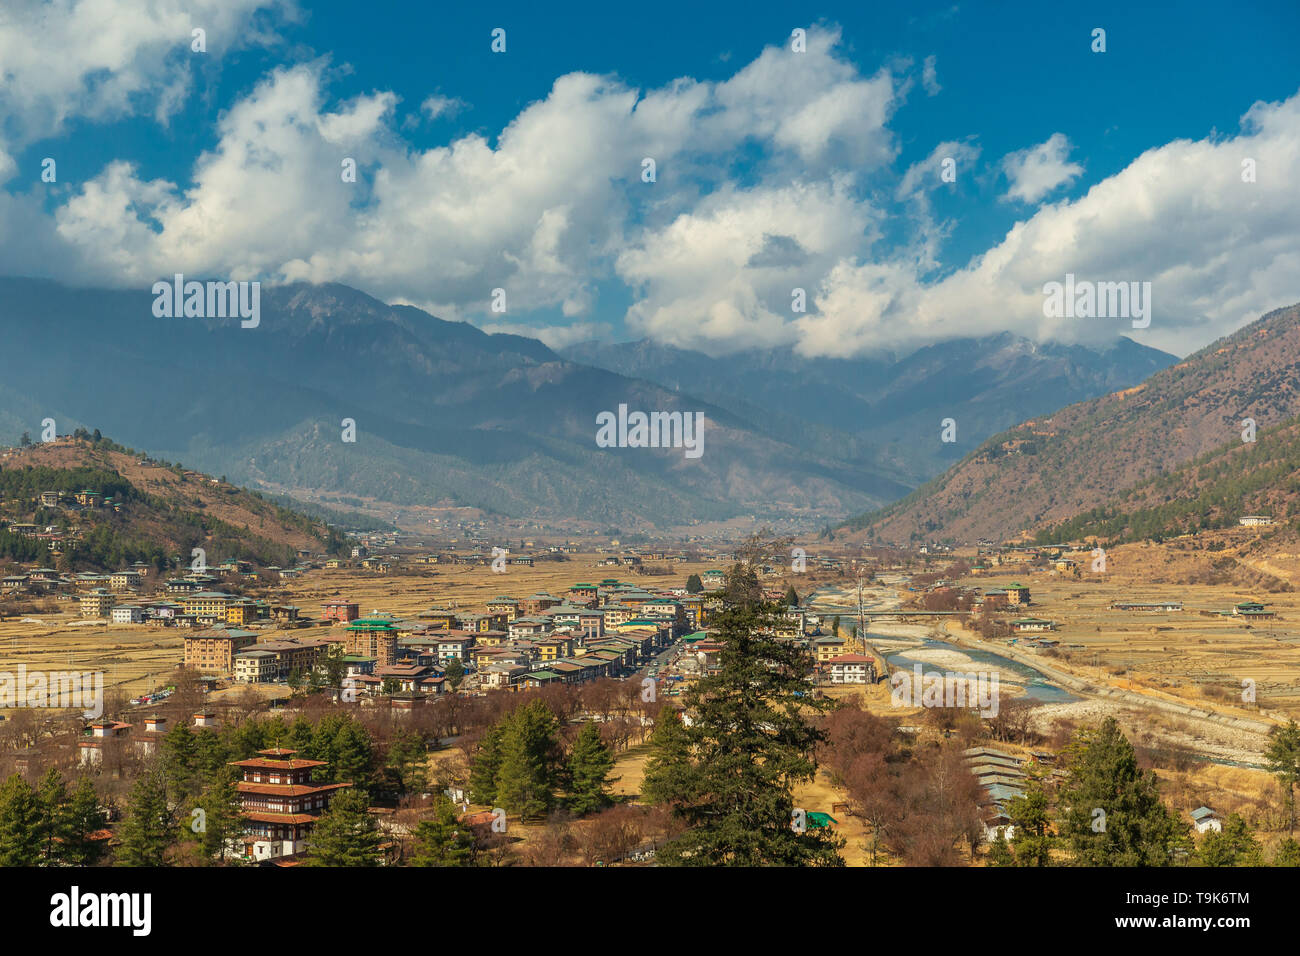 Cloudy Paro valley as seen from the Rinpung Dzong - Stock Image